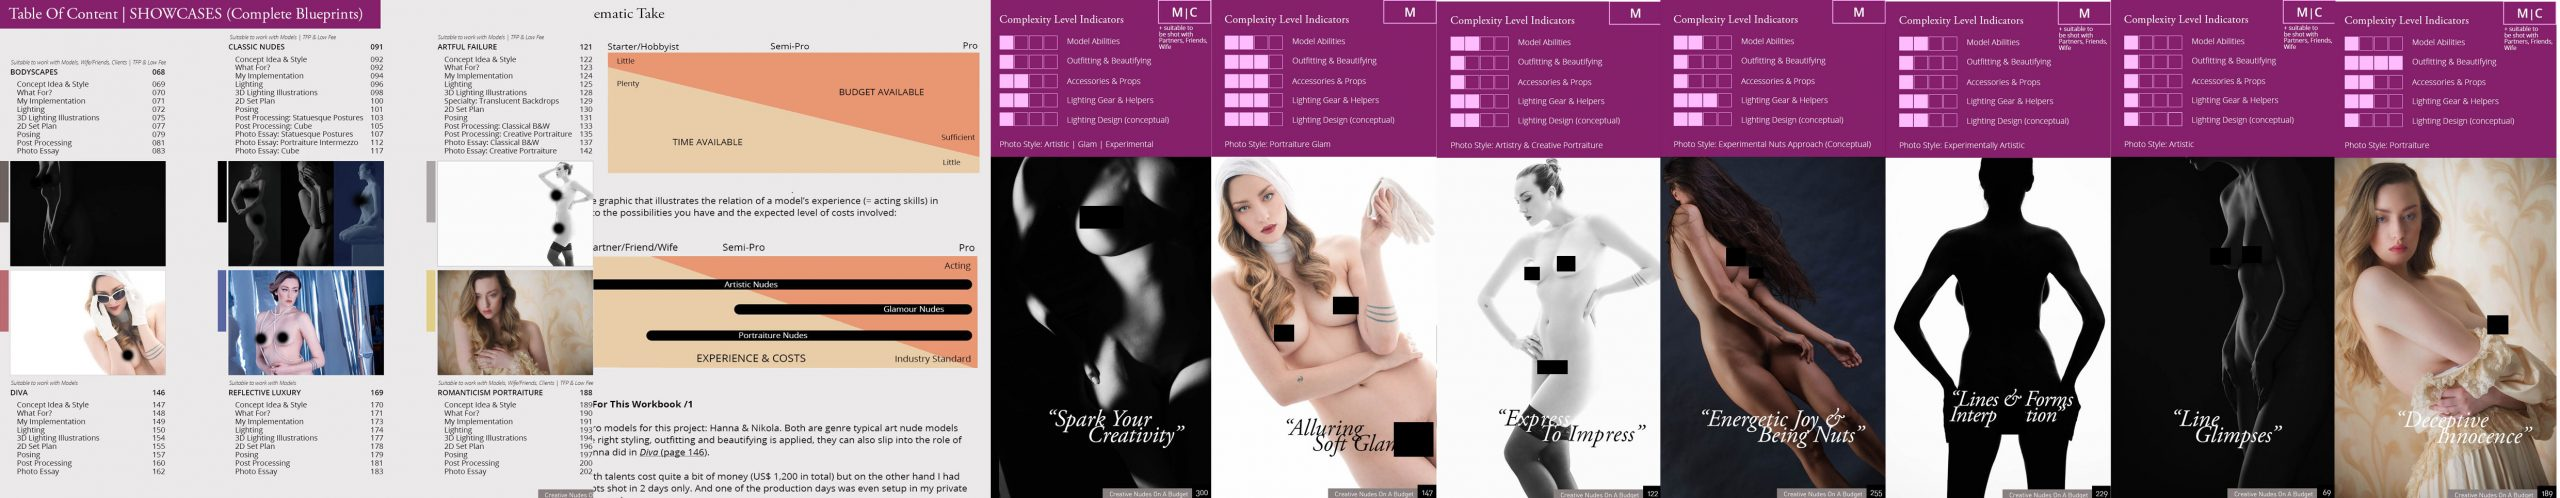 nude photography tips